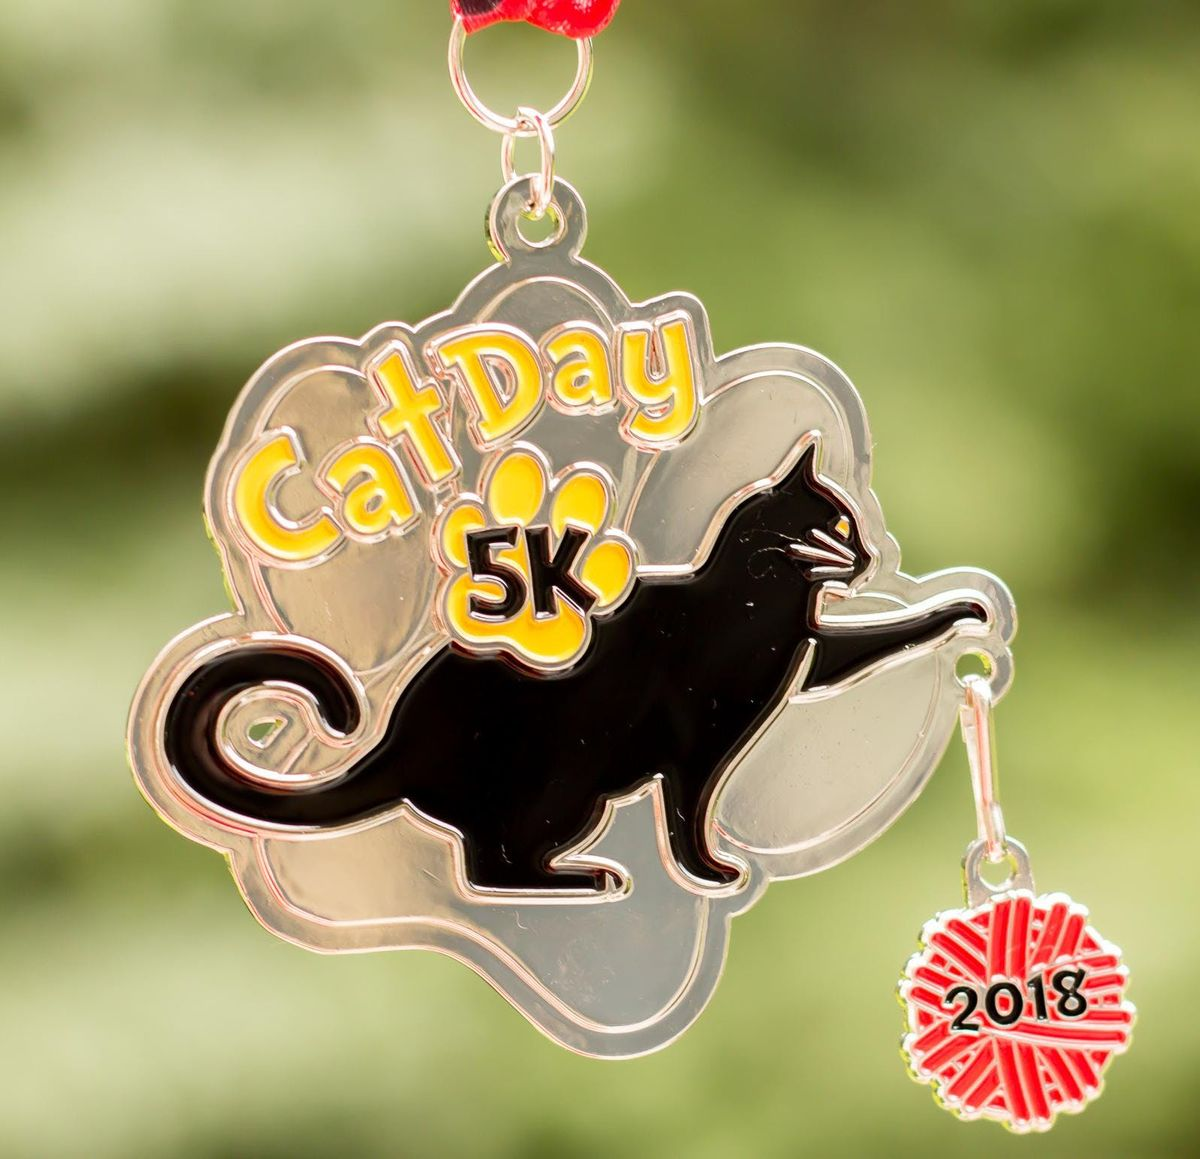 Now Only 10 Cat Day 5K & 10K - Albany